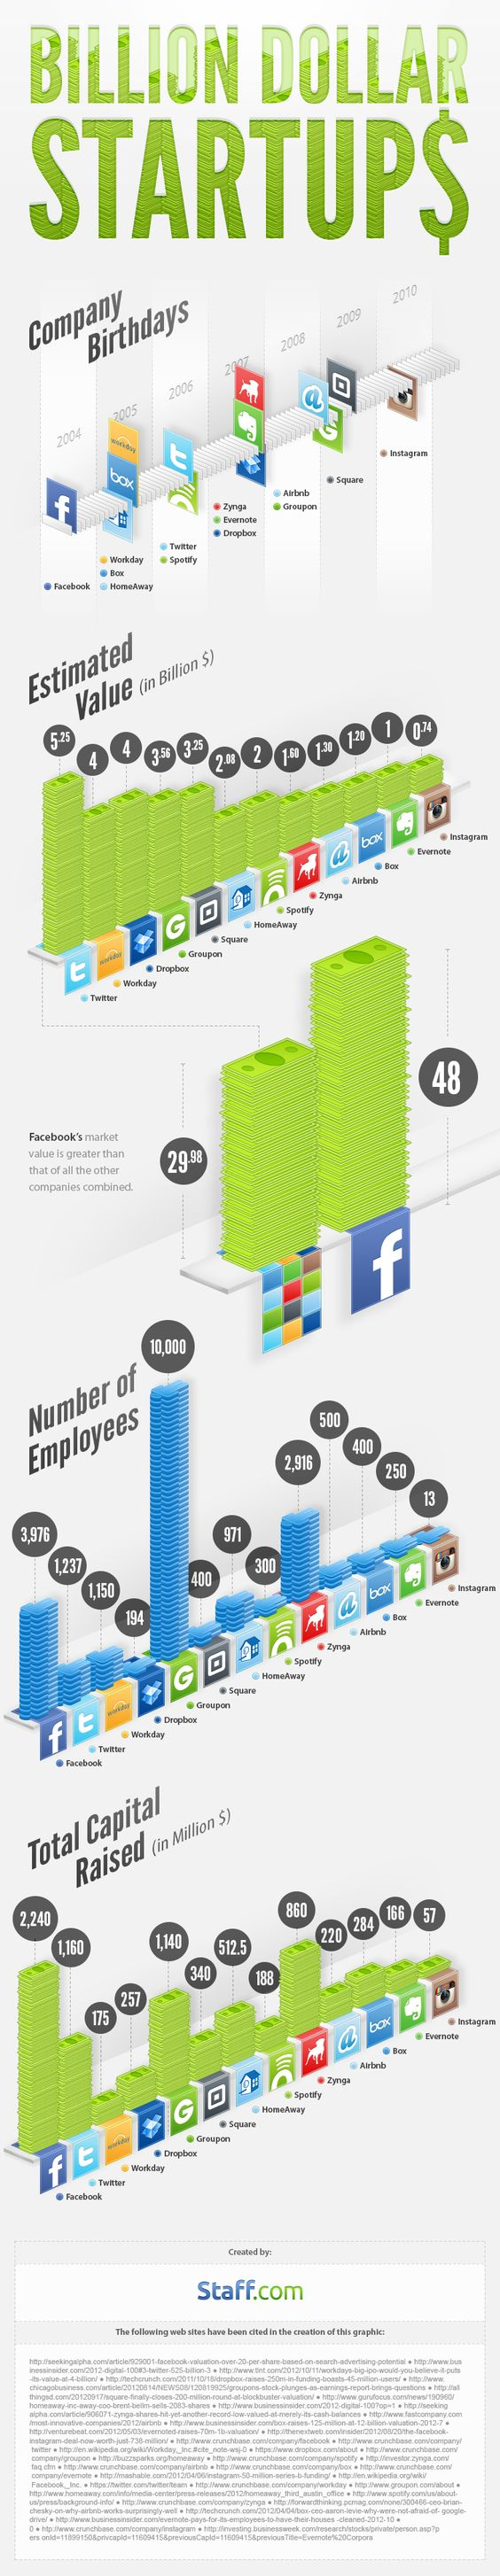 Very nicely designed infographic about social networks valuations. Not a lot of data but what there is is very well visualized. And there are some fun surprises such as the number of employees (compare and contrast Groupon and Instagram in terms of employees and valuation...)